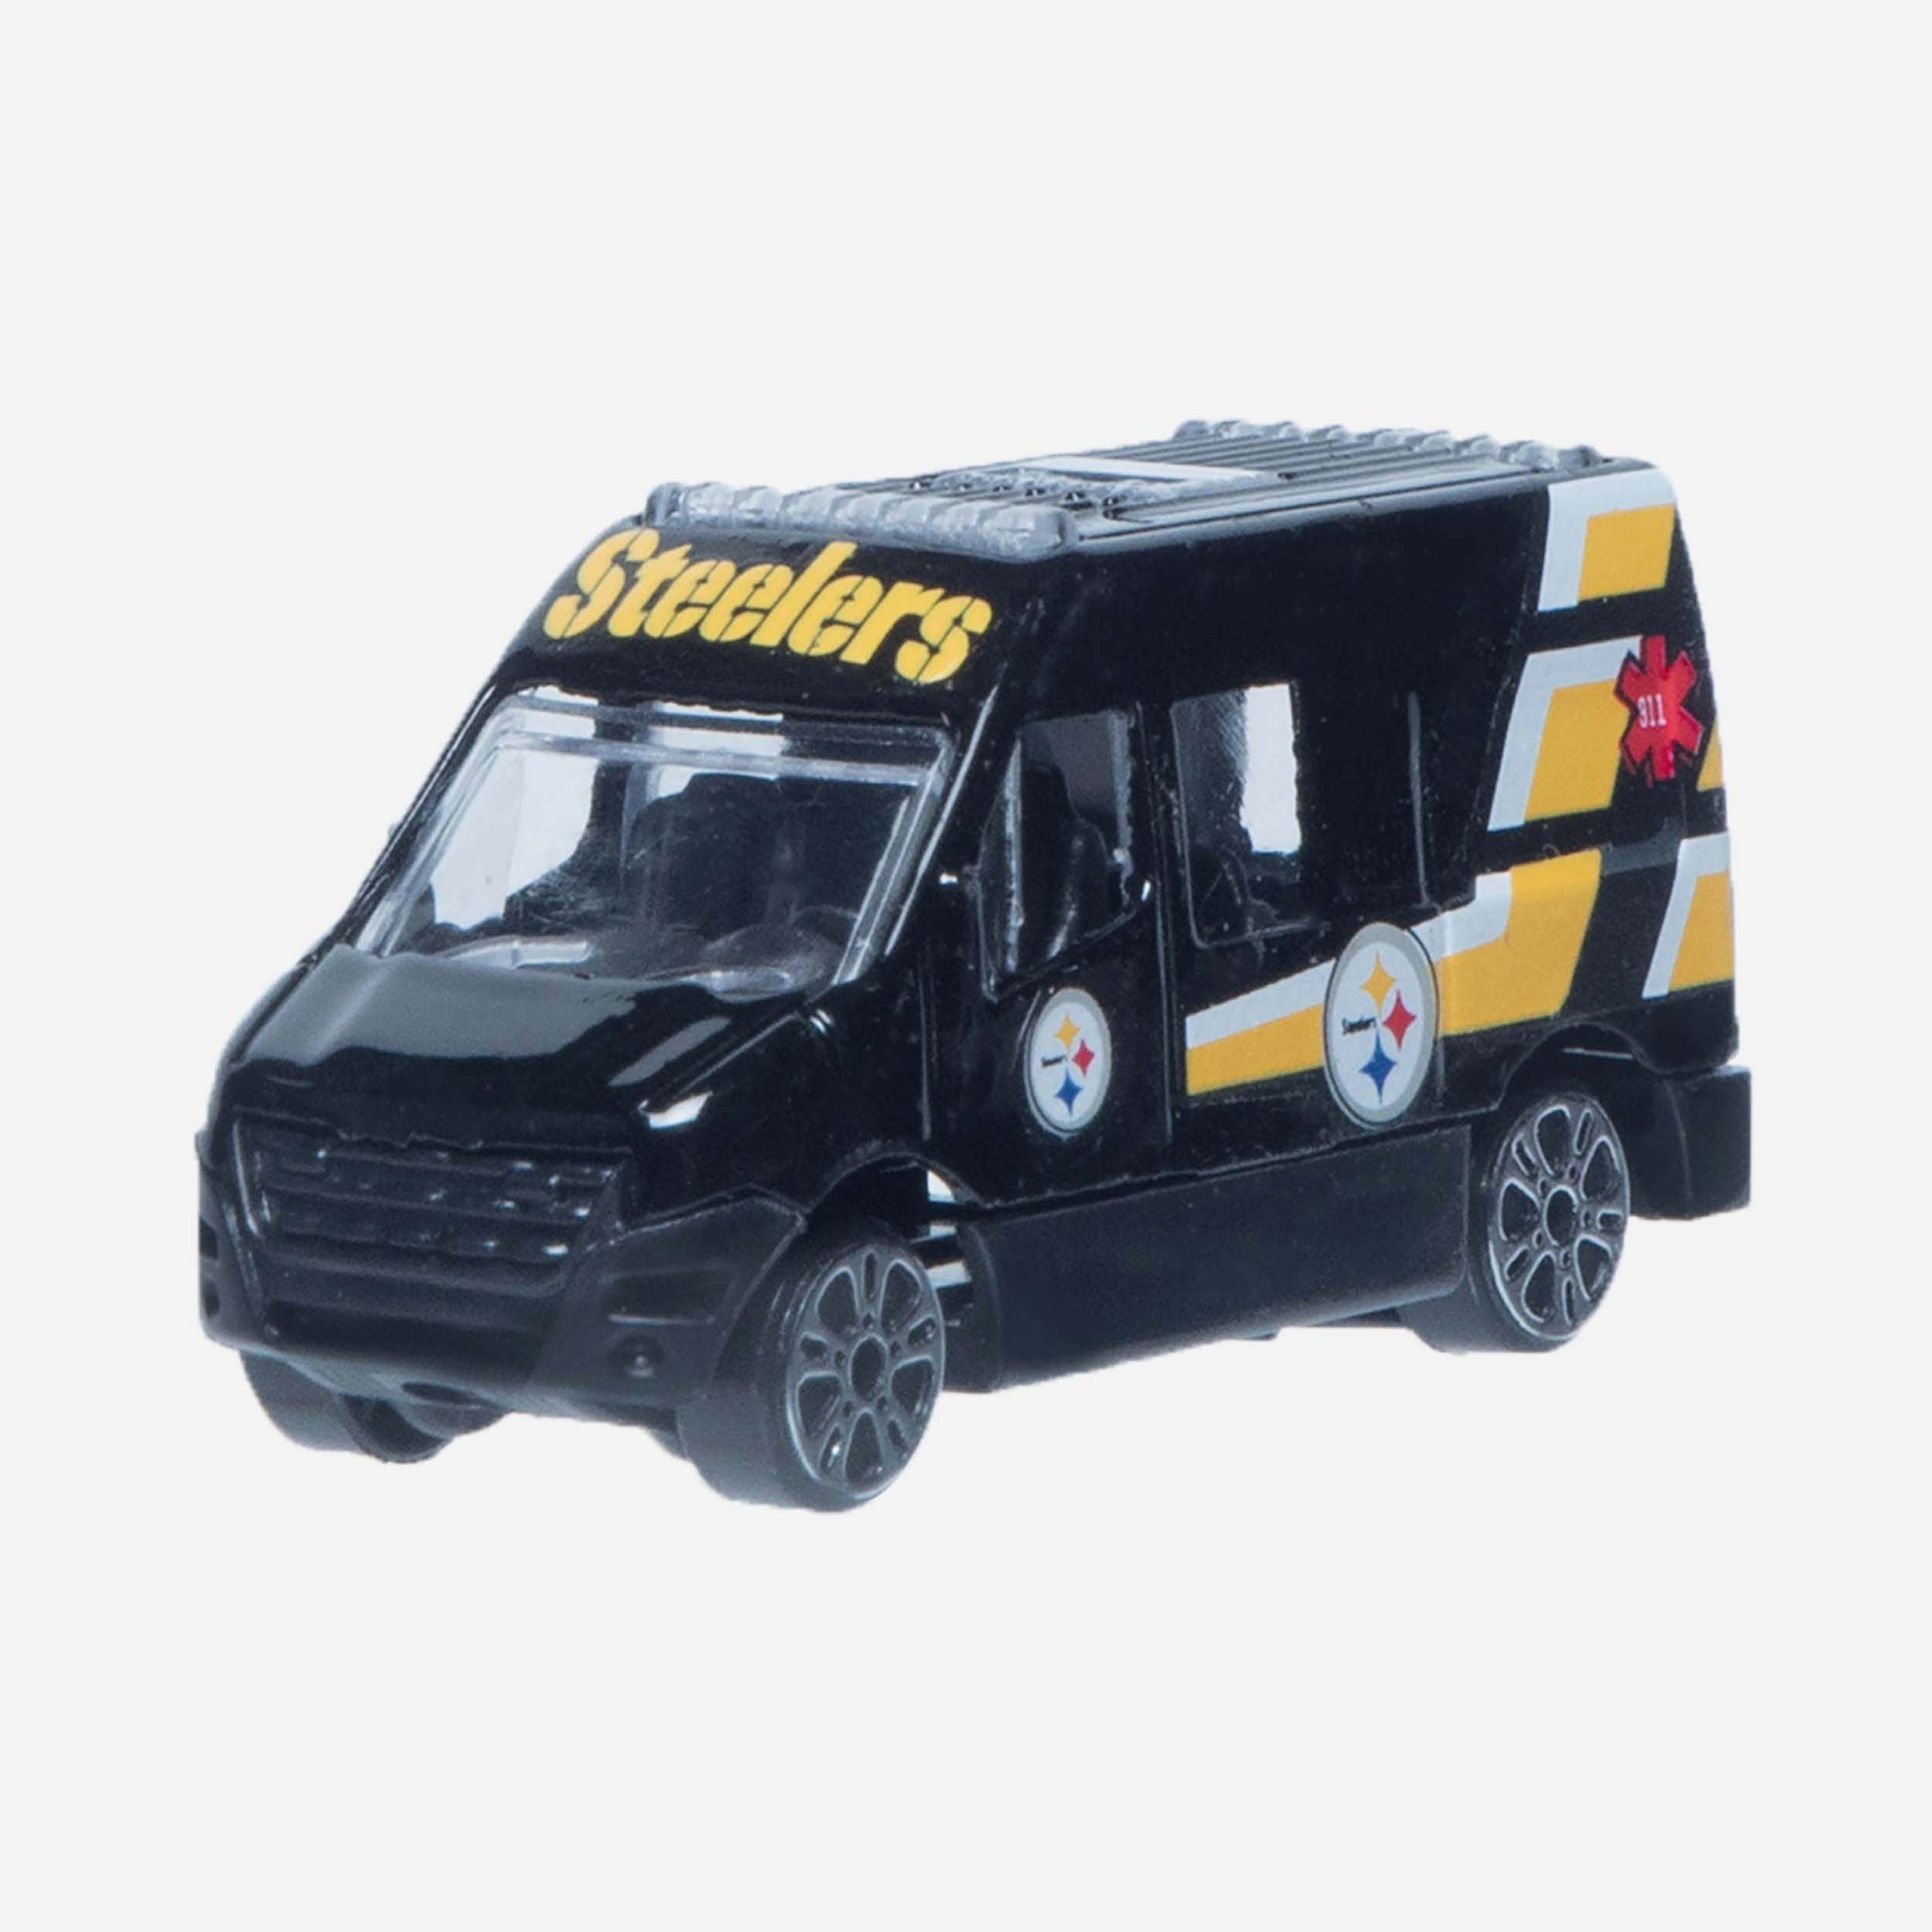 Pittsburgh Steelers Die Cast Cars 4 Pack FOCO - FOCO.com 70e8423fe